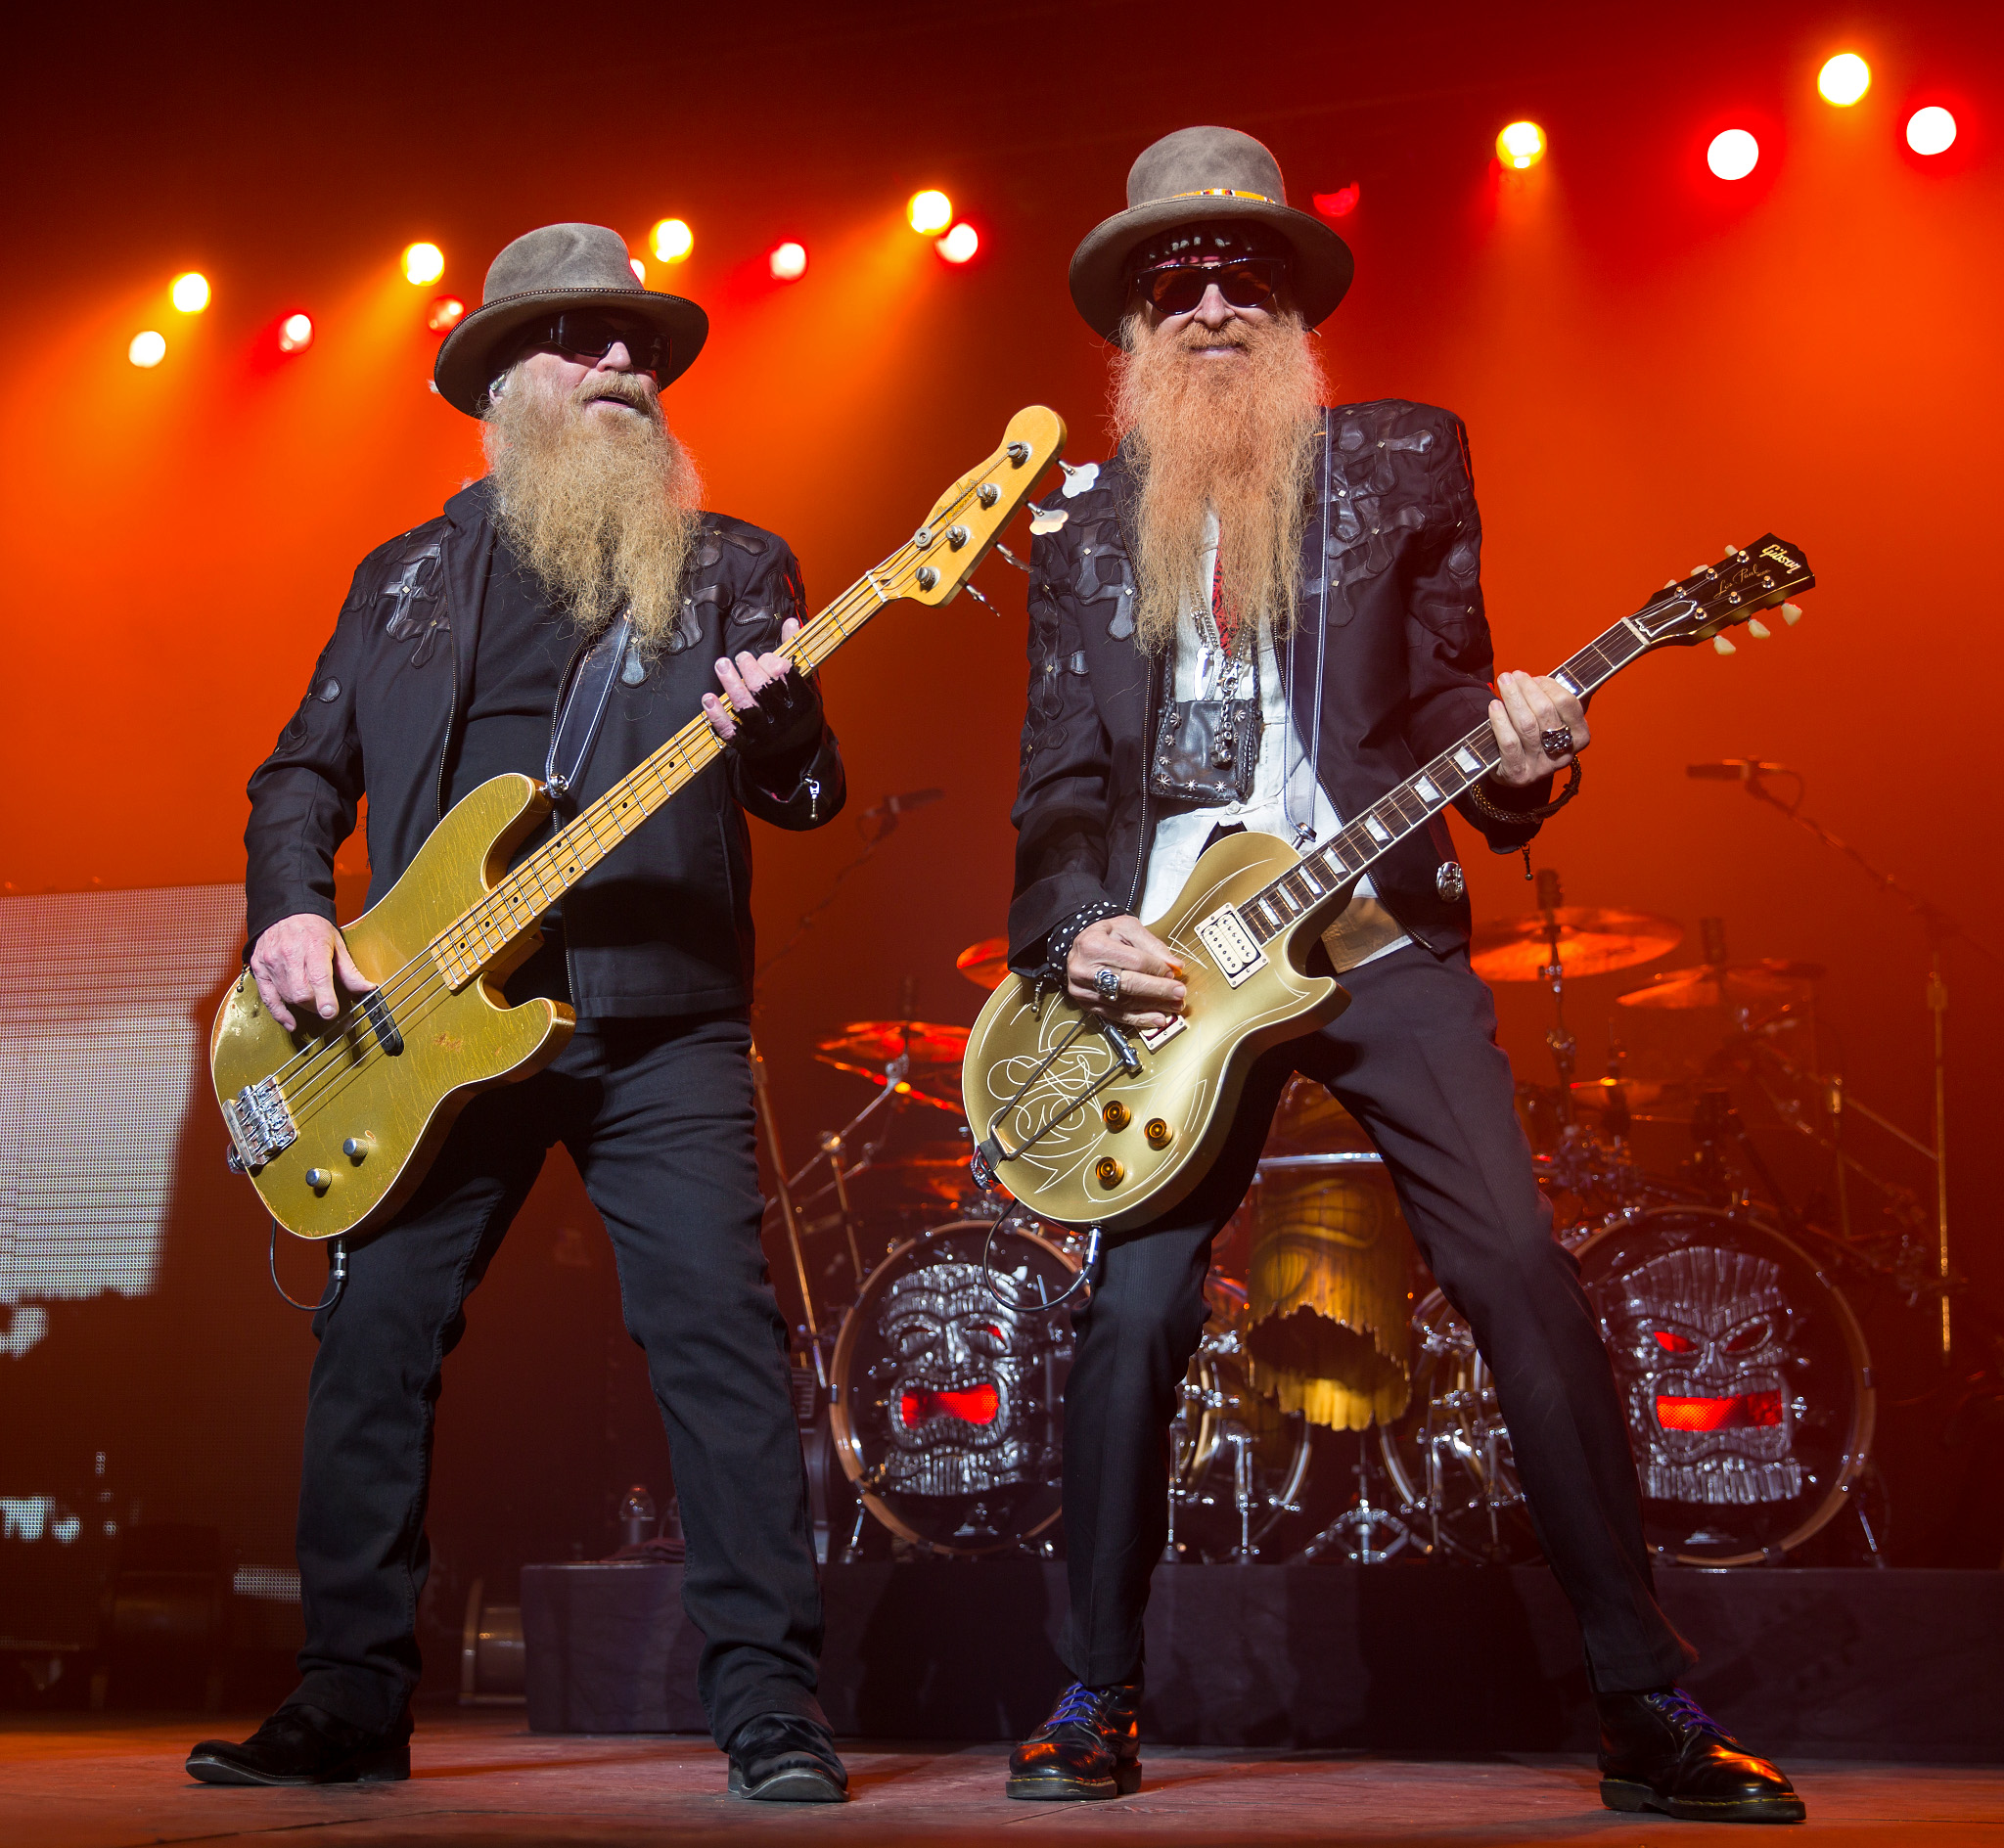 ZZ_Top_performing_in_San_Antonio,_Texas_